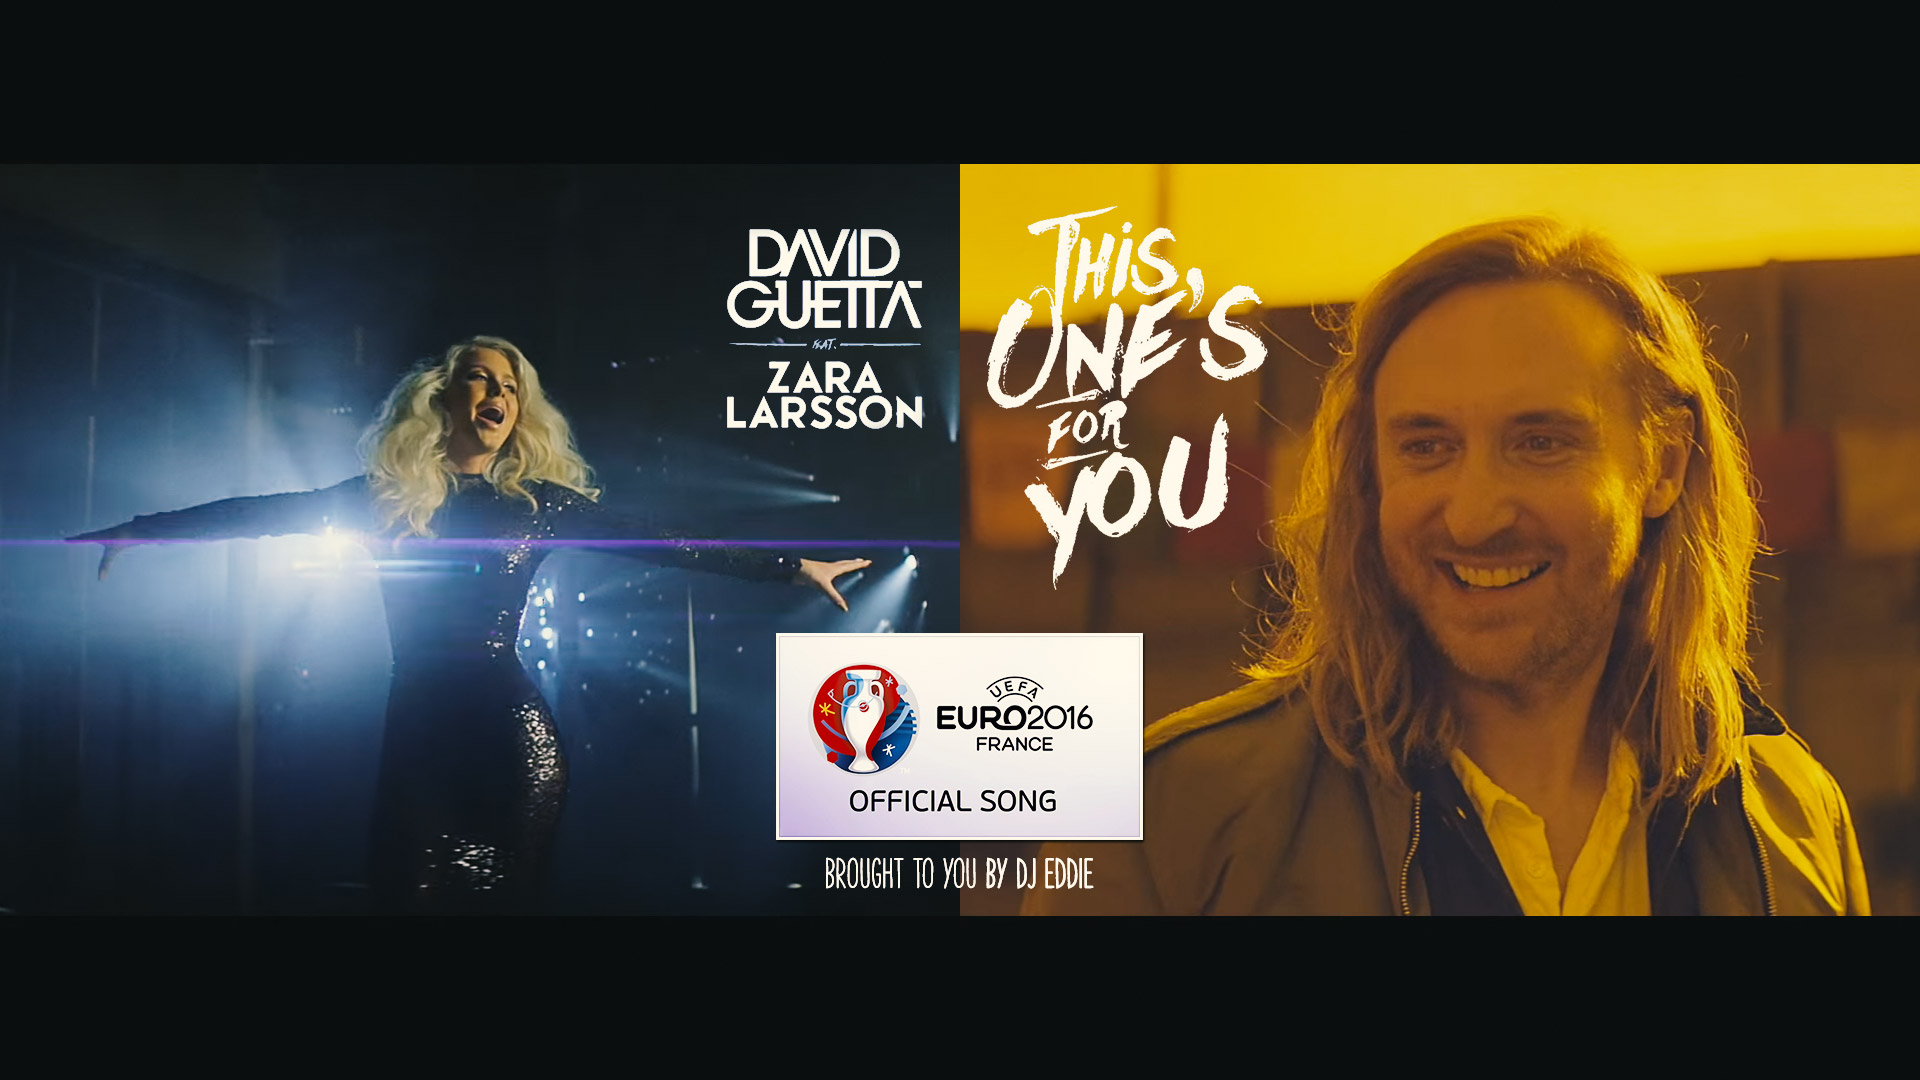 UEFA EURO 2016 Official Song by David Guetta ft. Zara Larsson - This One's For You